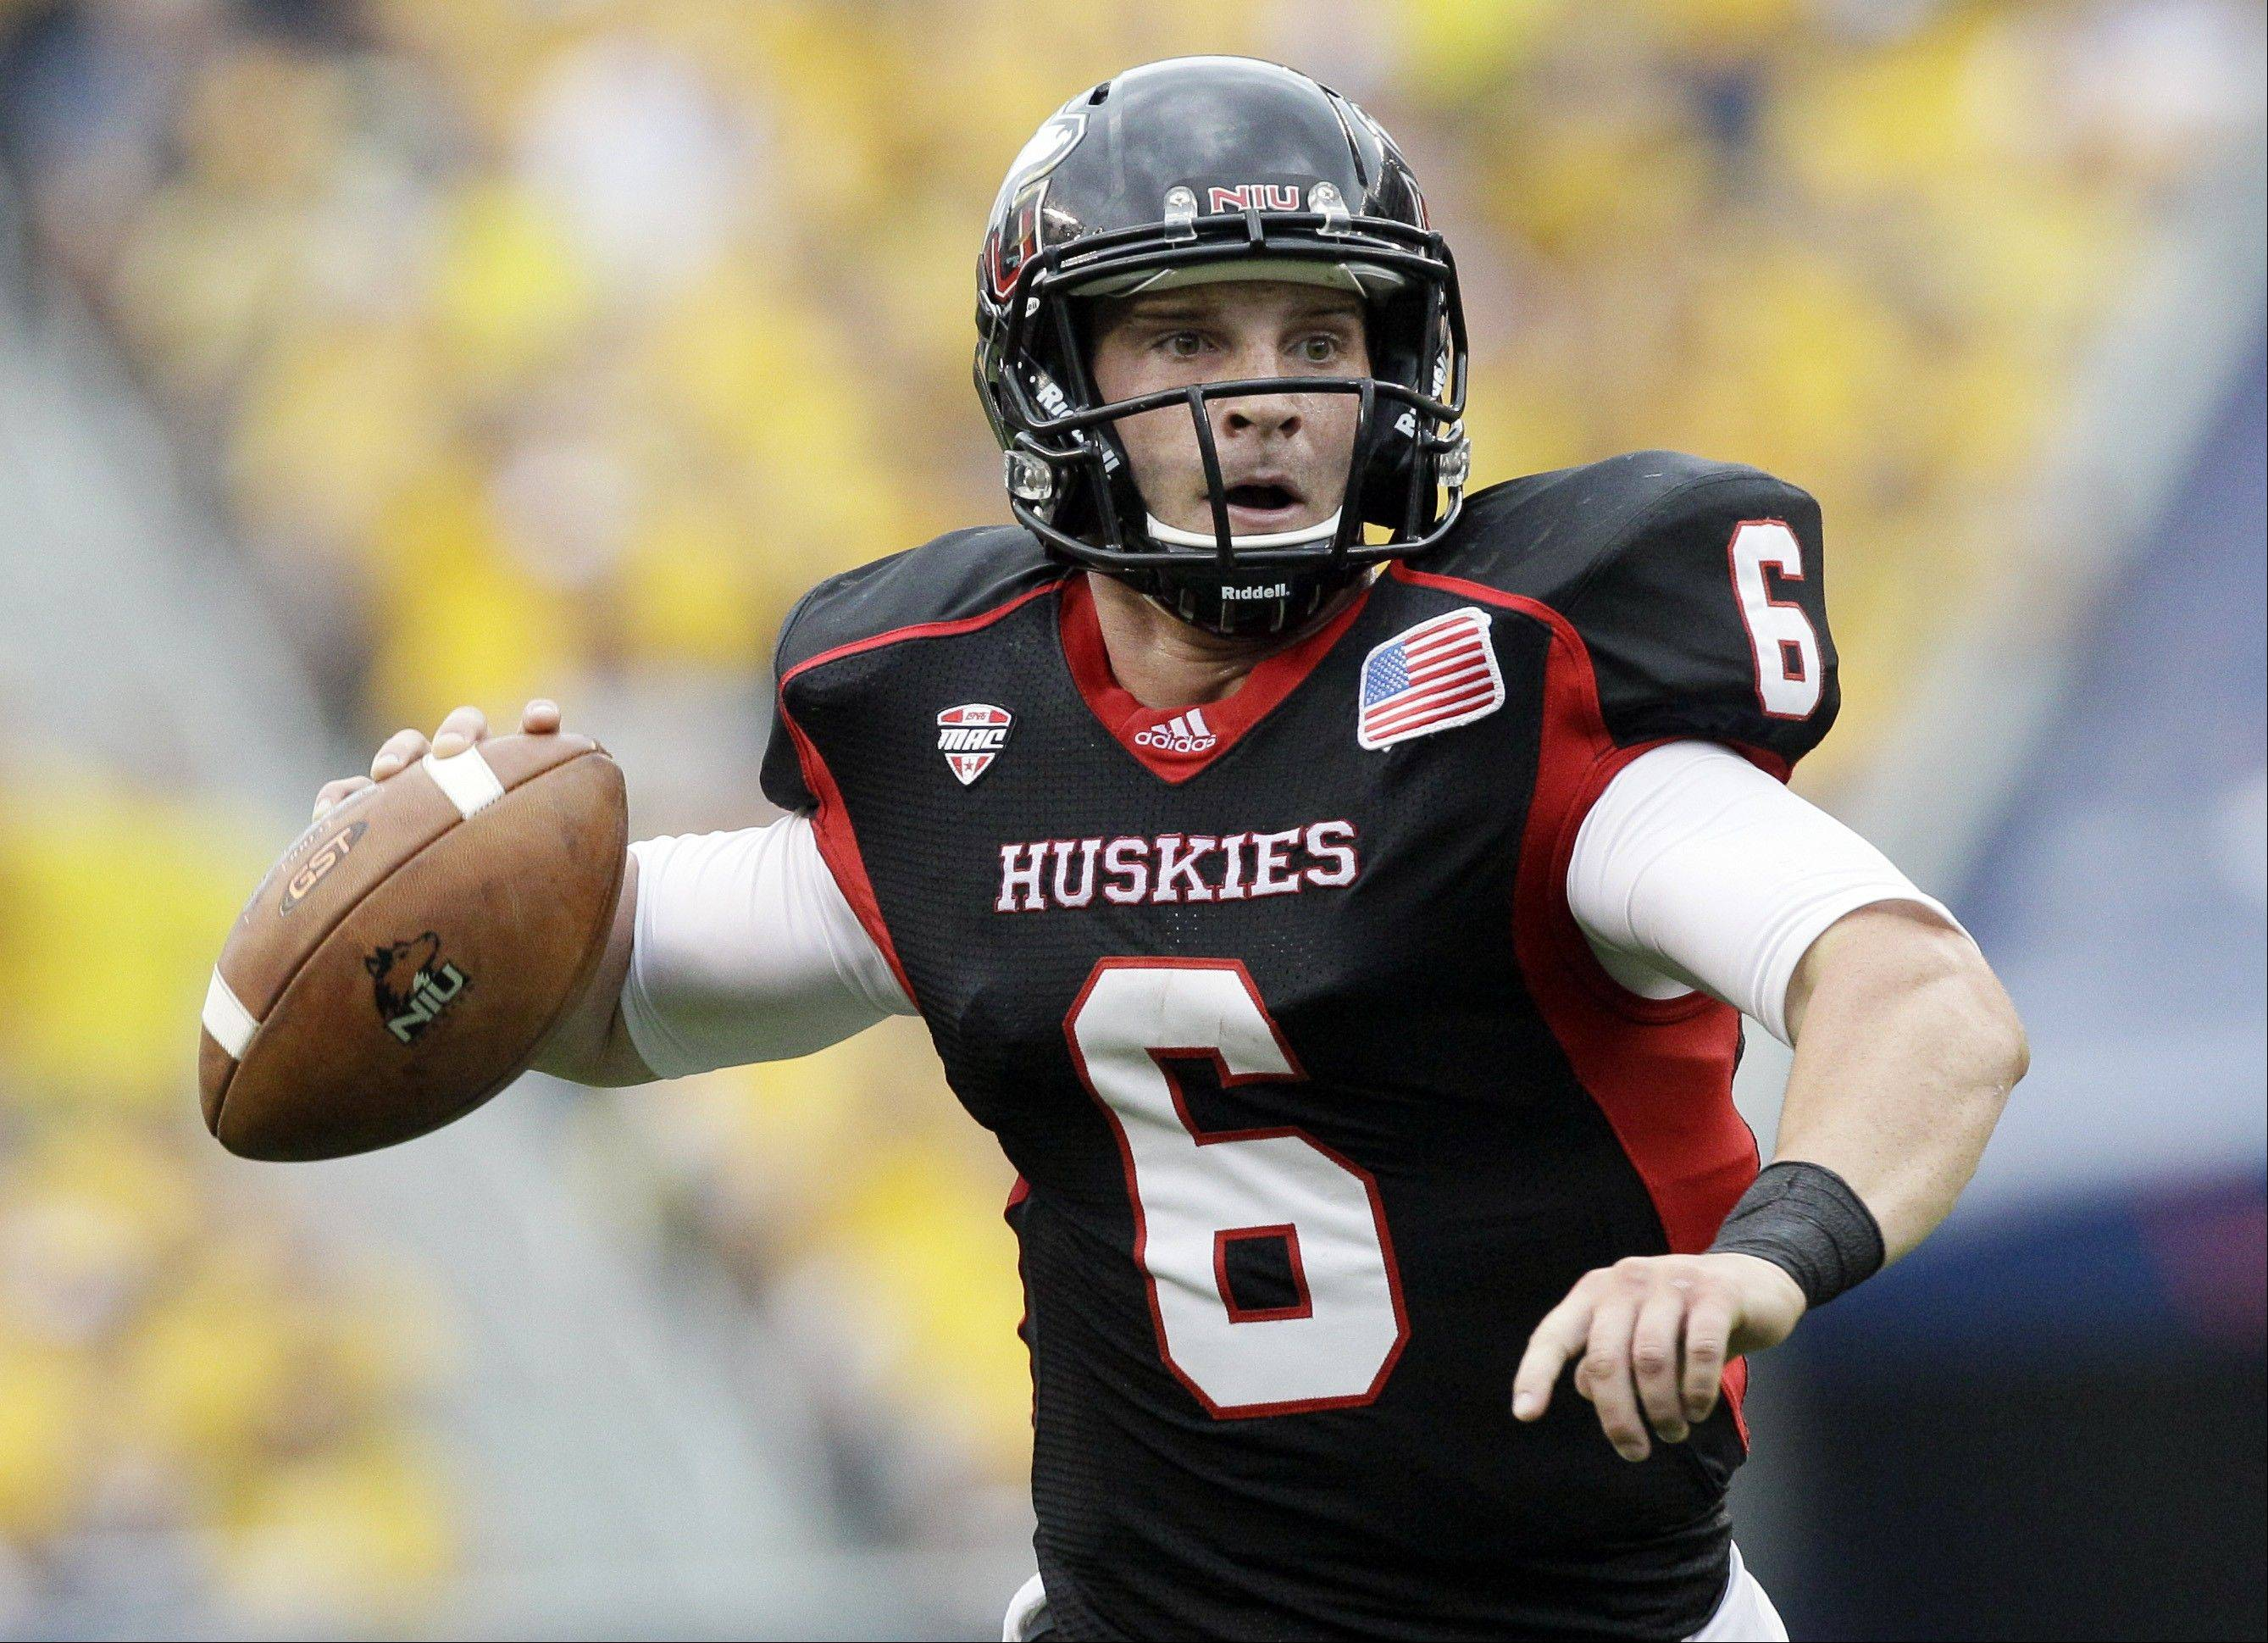 Northern Illinois quarterback Jordan Lynch is having too good of a season to let it go unnoticed.